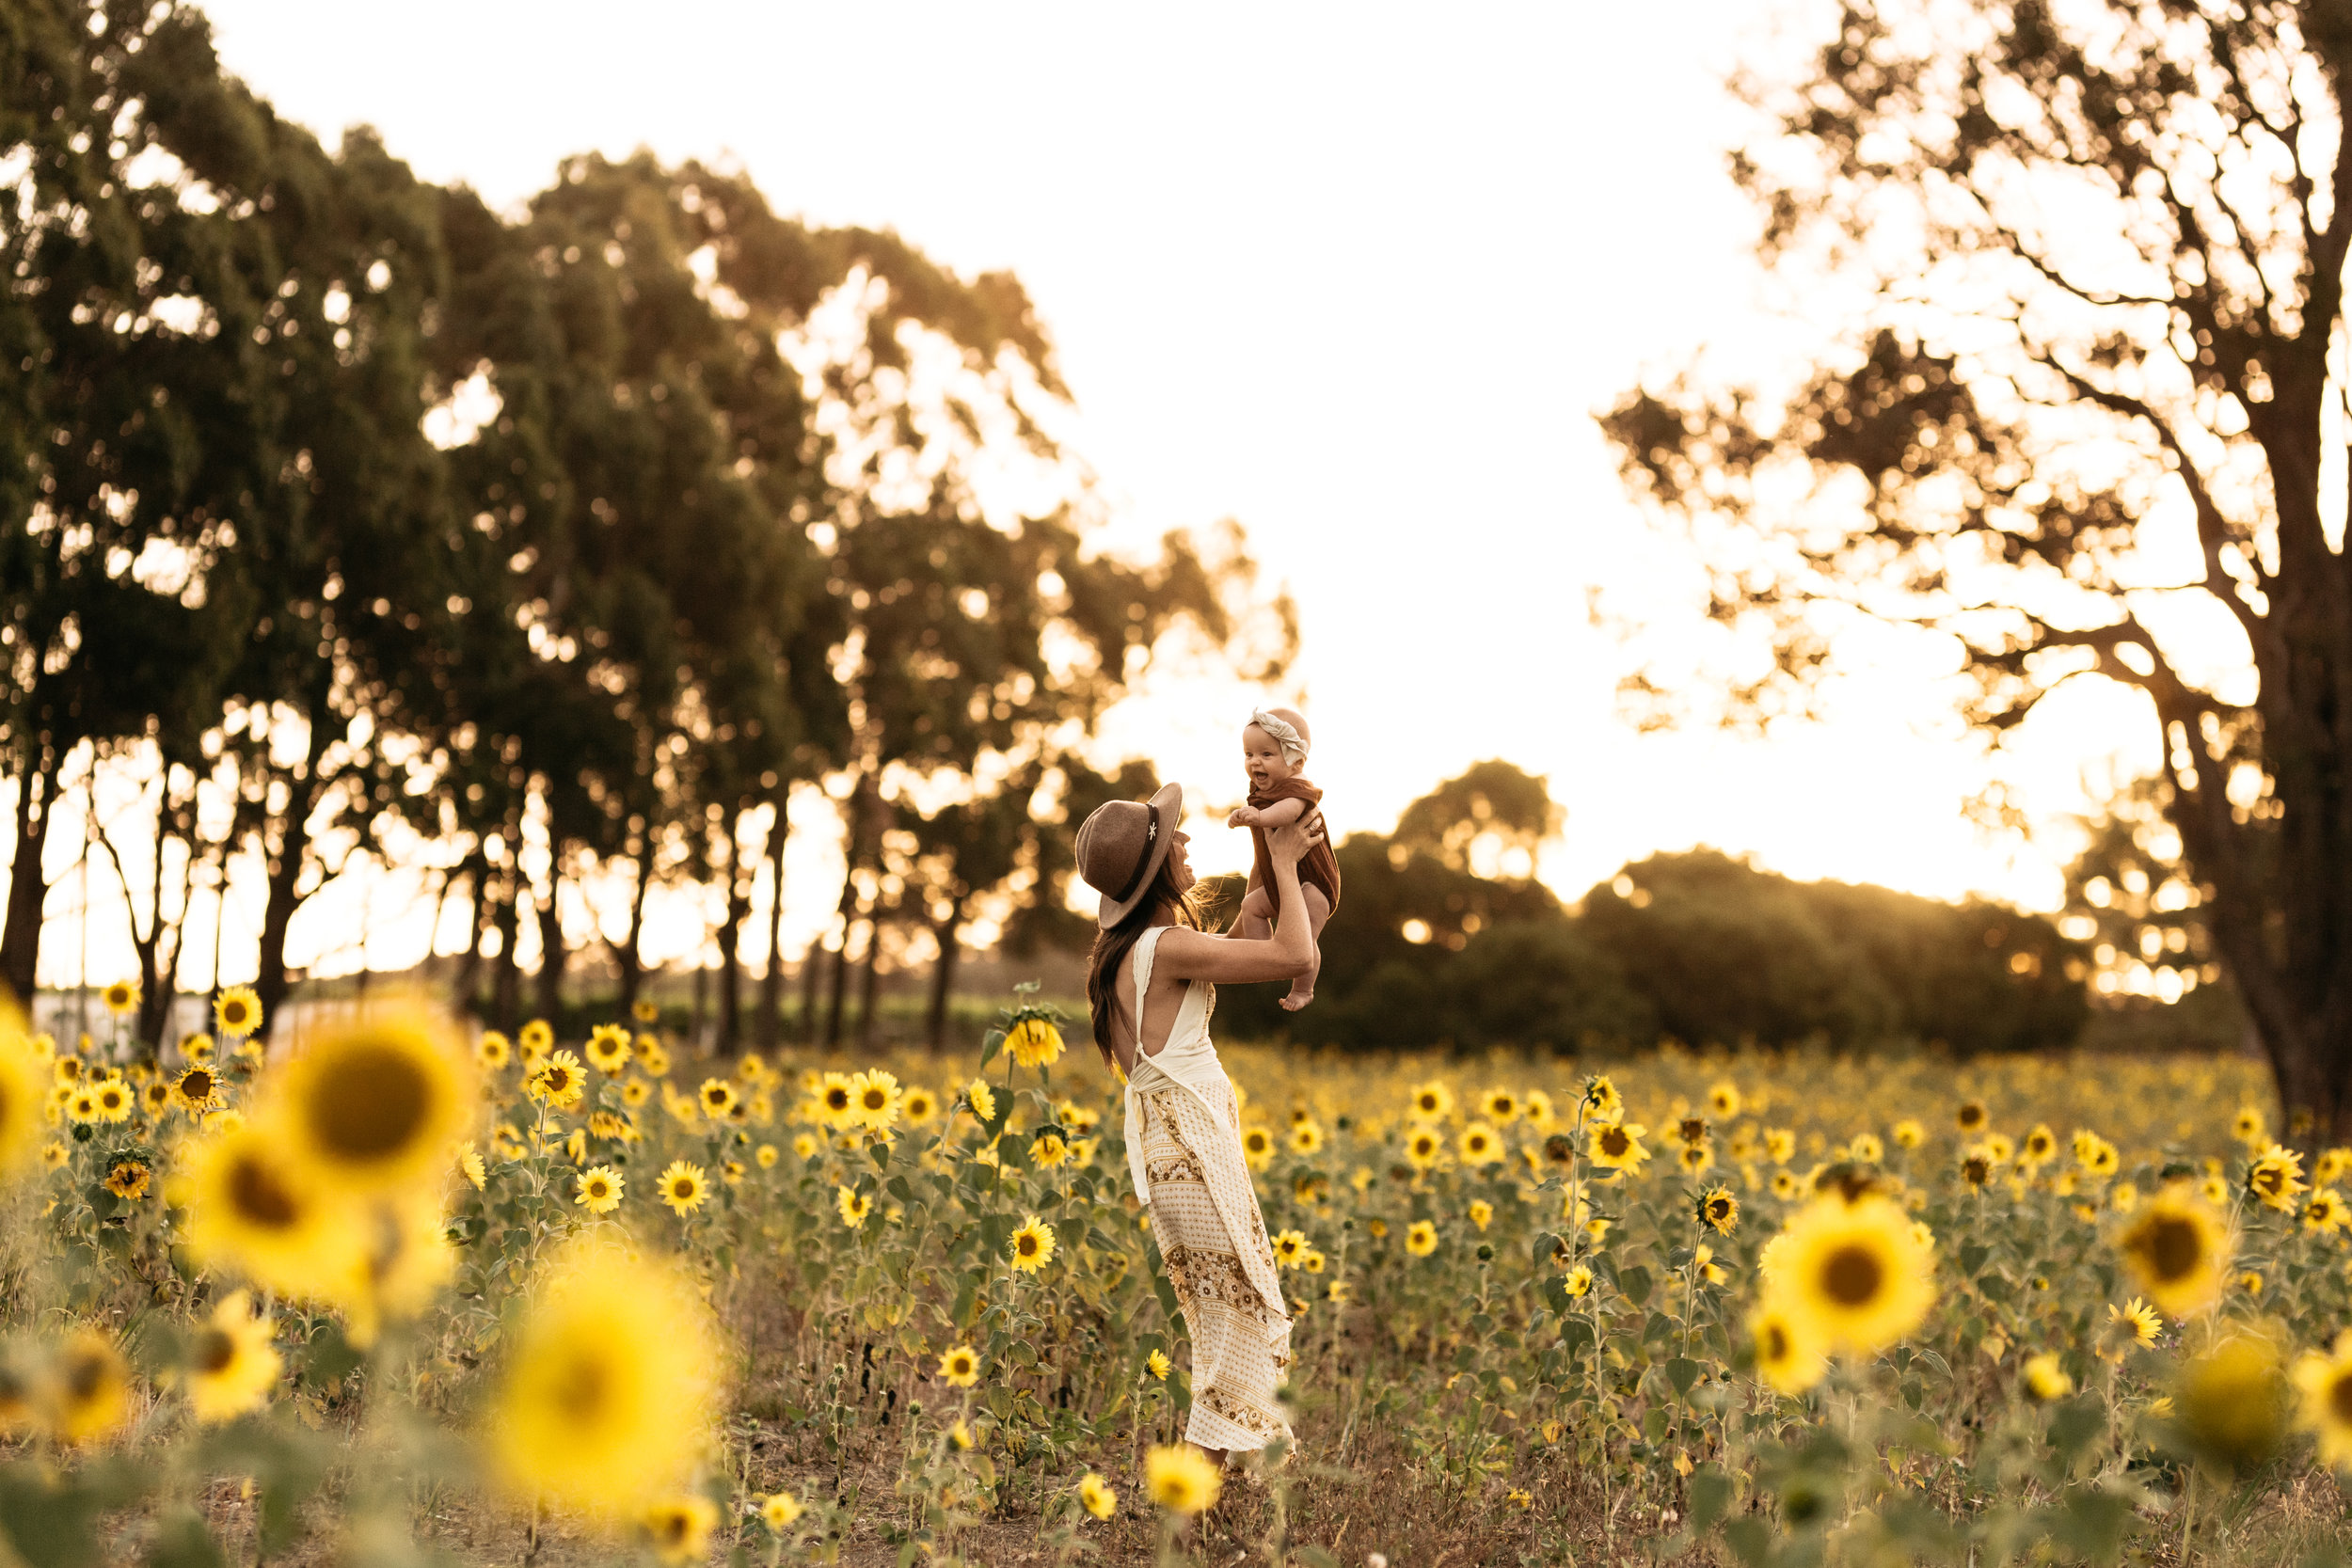 Elkie_Sunflowers2019_KHPhoto-50.JPG